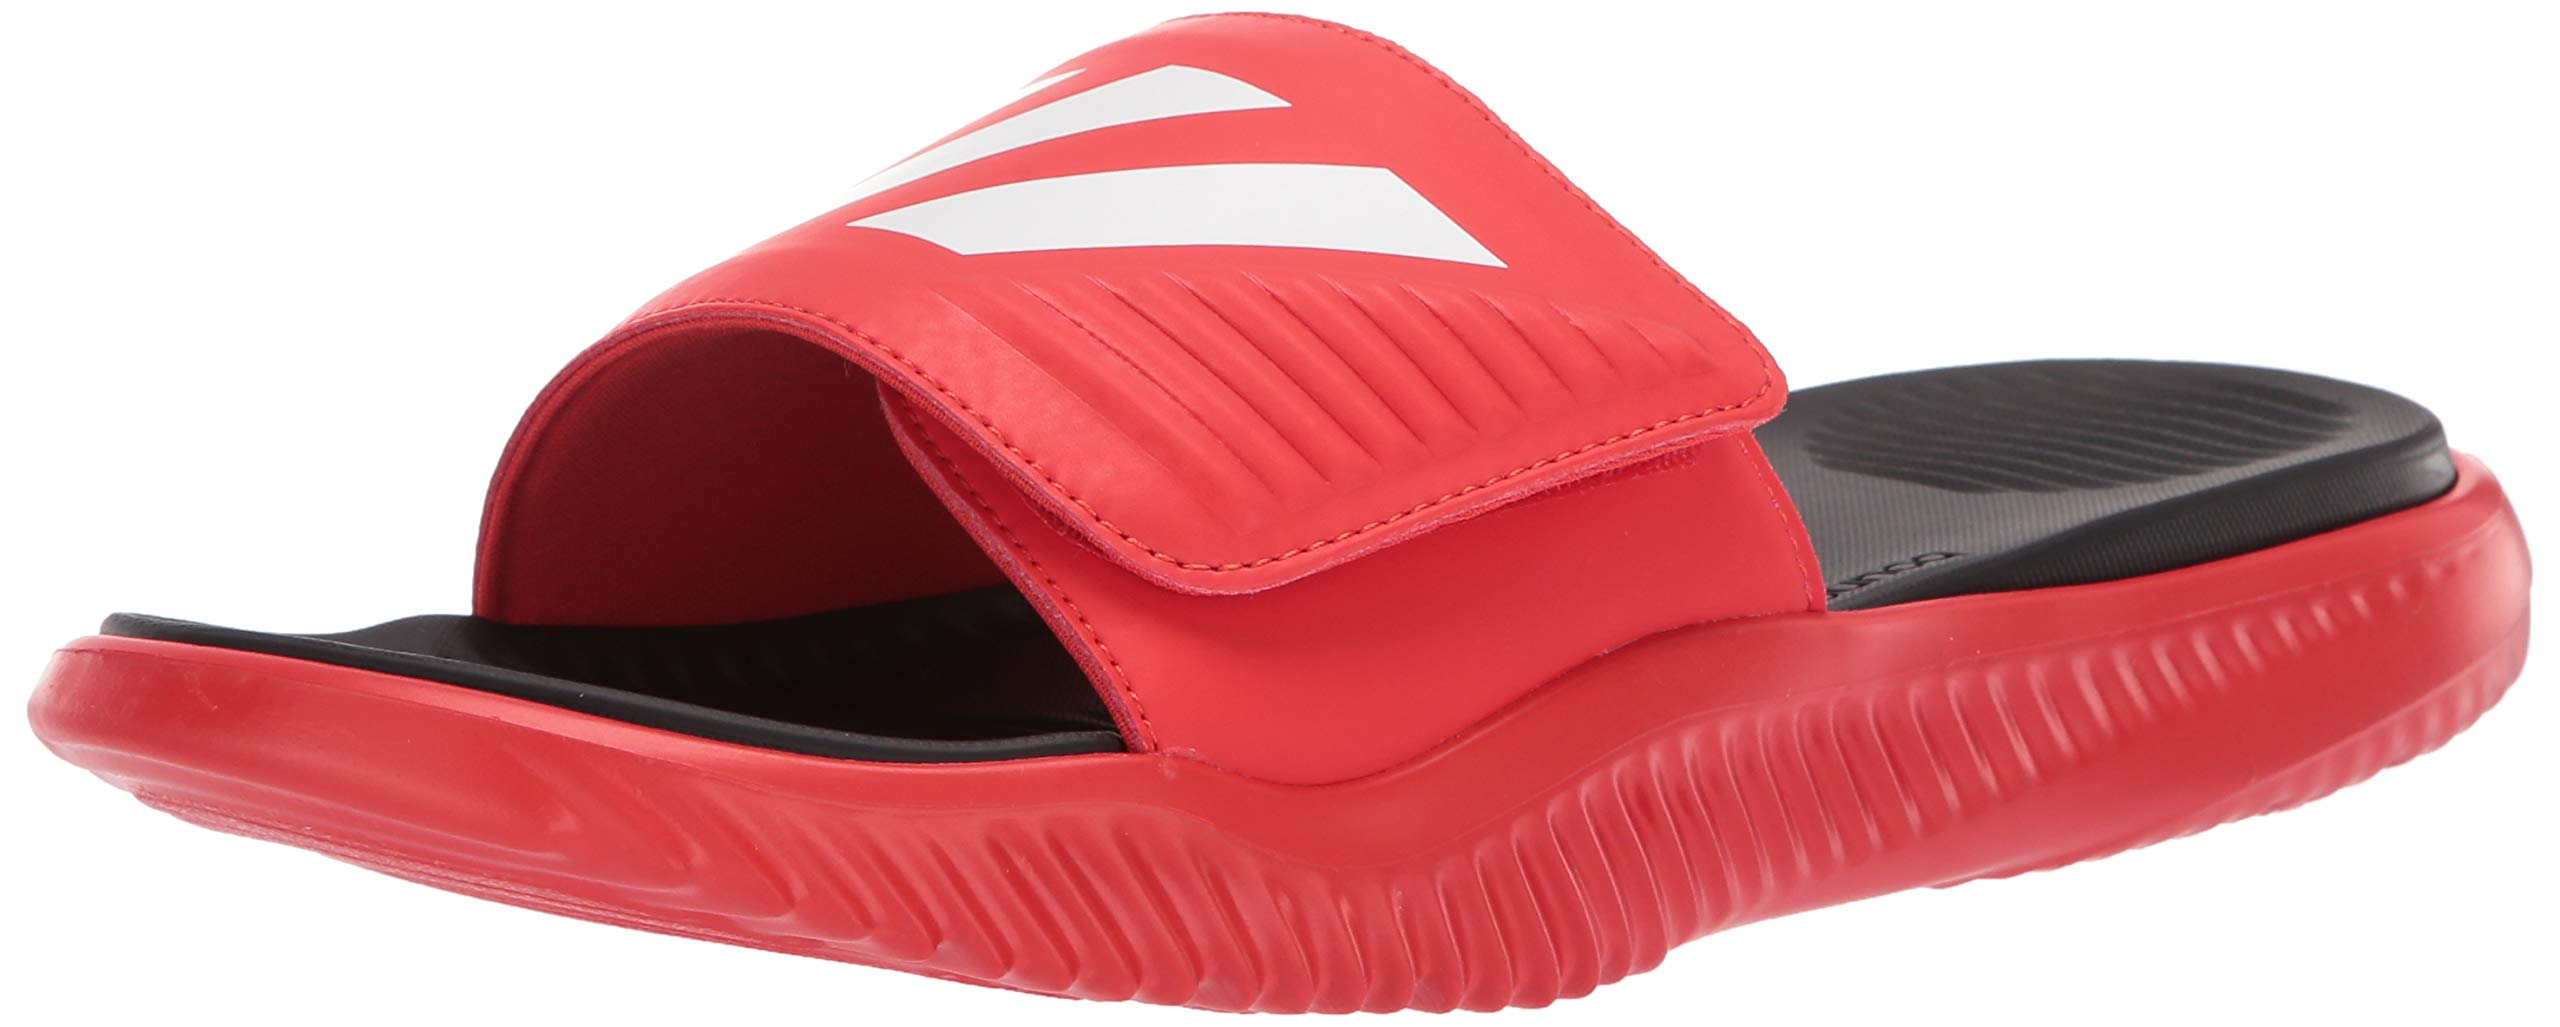 adidas Men's Alphabounce Slide Shoes, Active red/White/Black, 10 M US